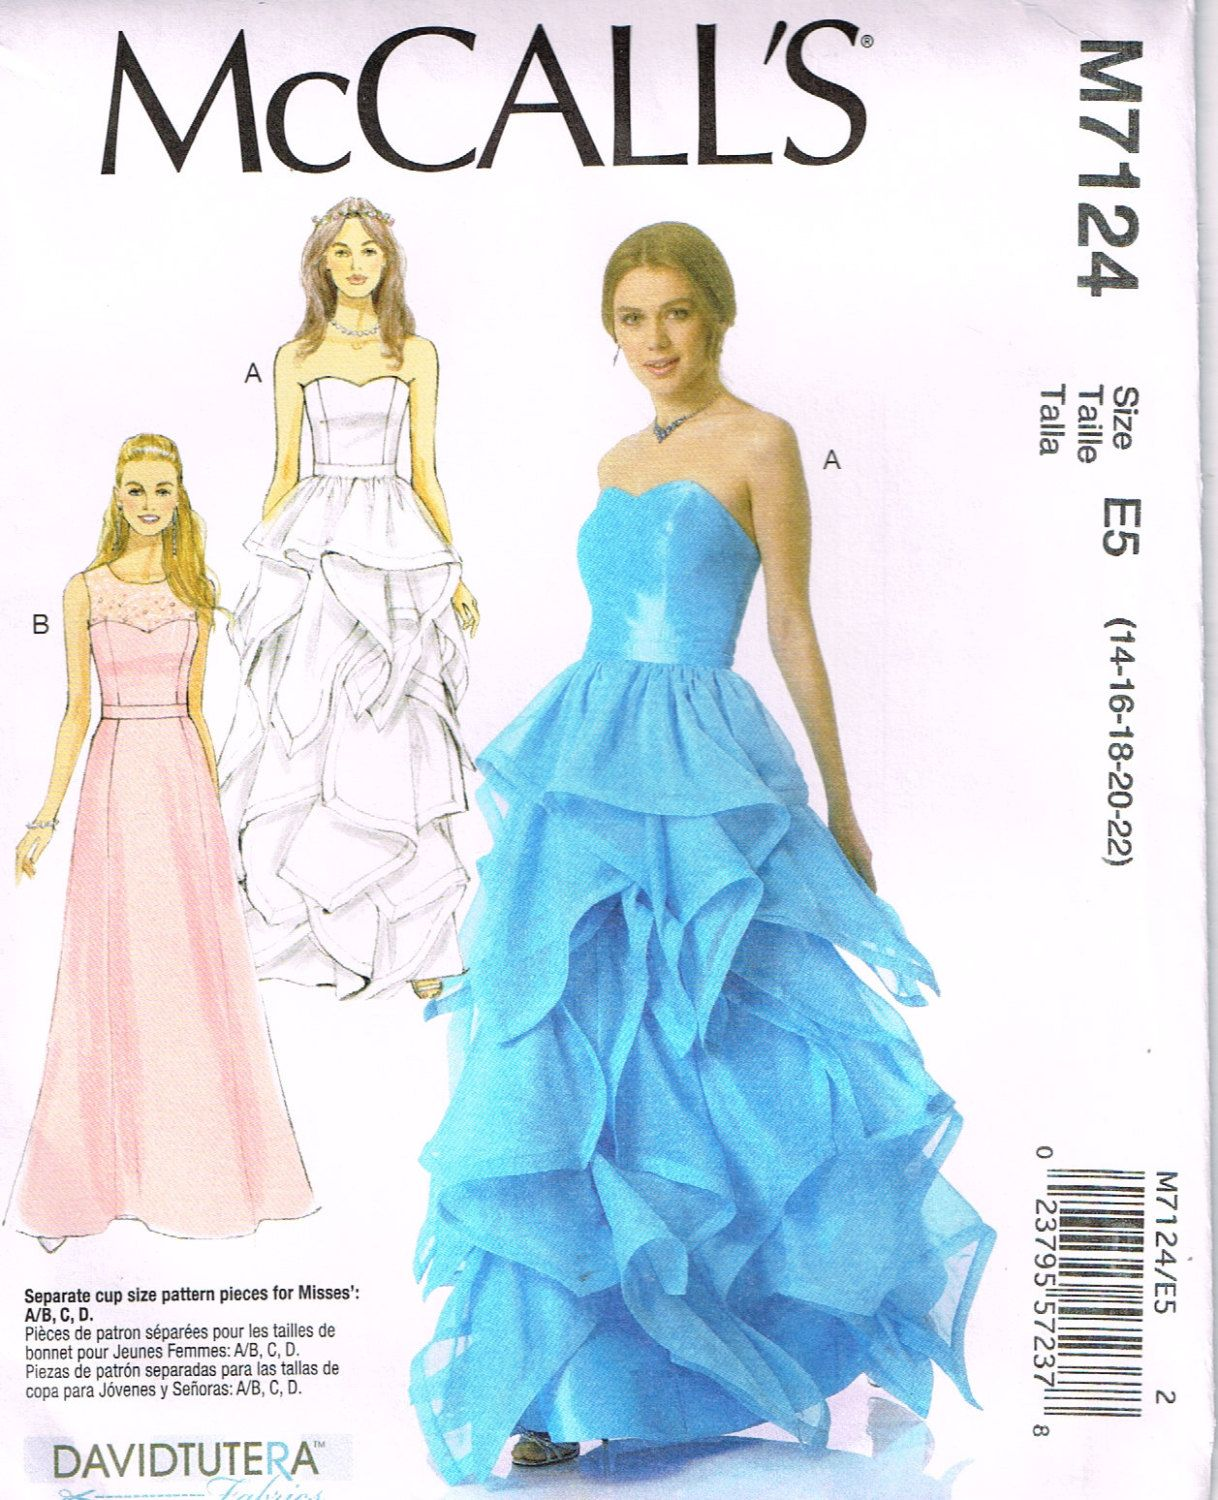 a92f4178fc14b McCall's M7124, Sewing Pattern, Misses' Special Occasion Dress by David  Tutera, Size 14, 16, 18, 20, 22, Prom by OhSewWorthIt on Etsy